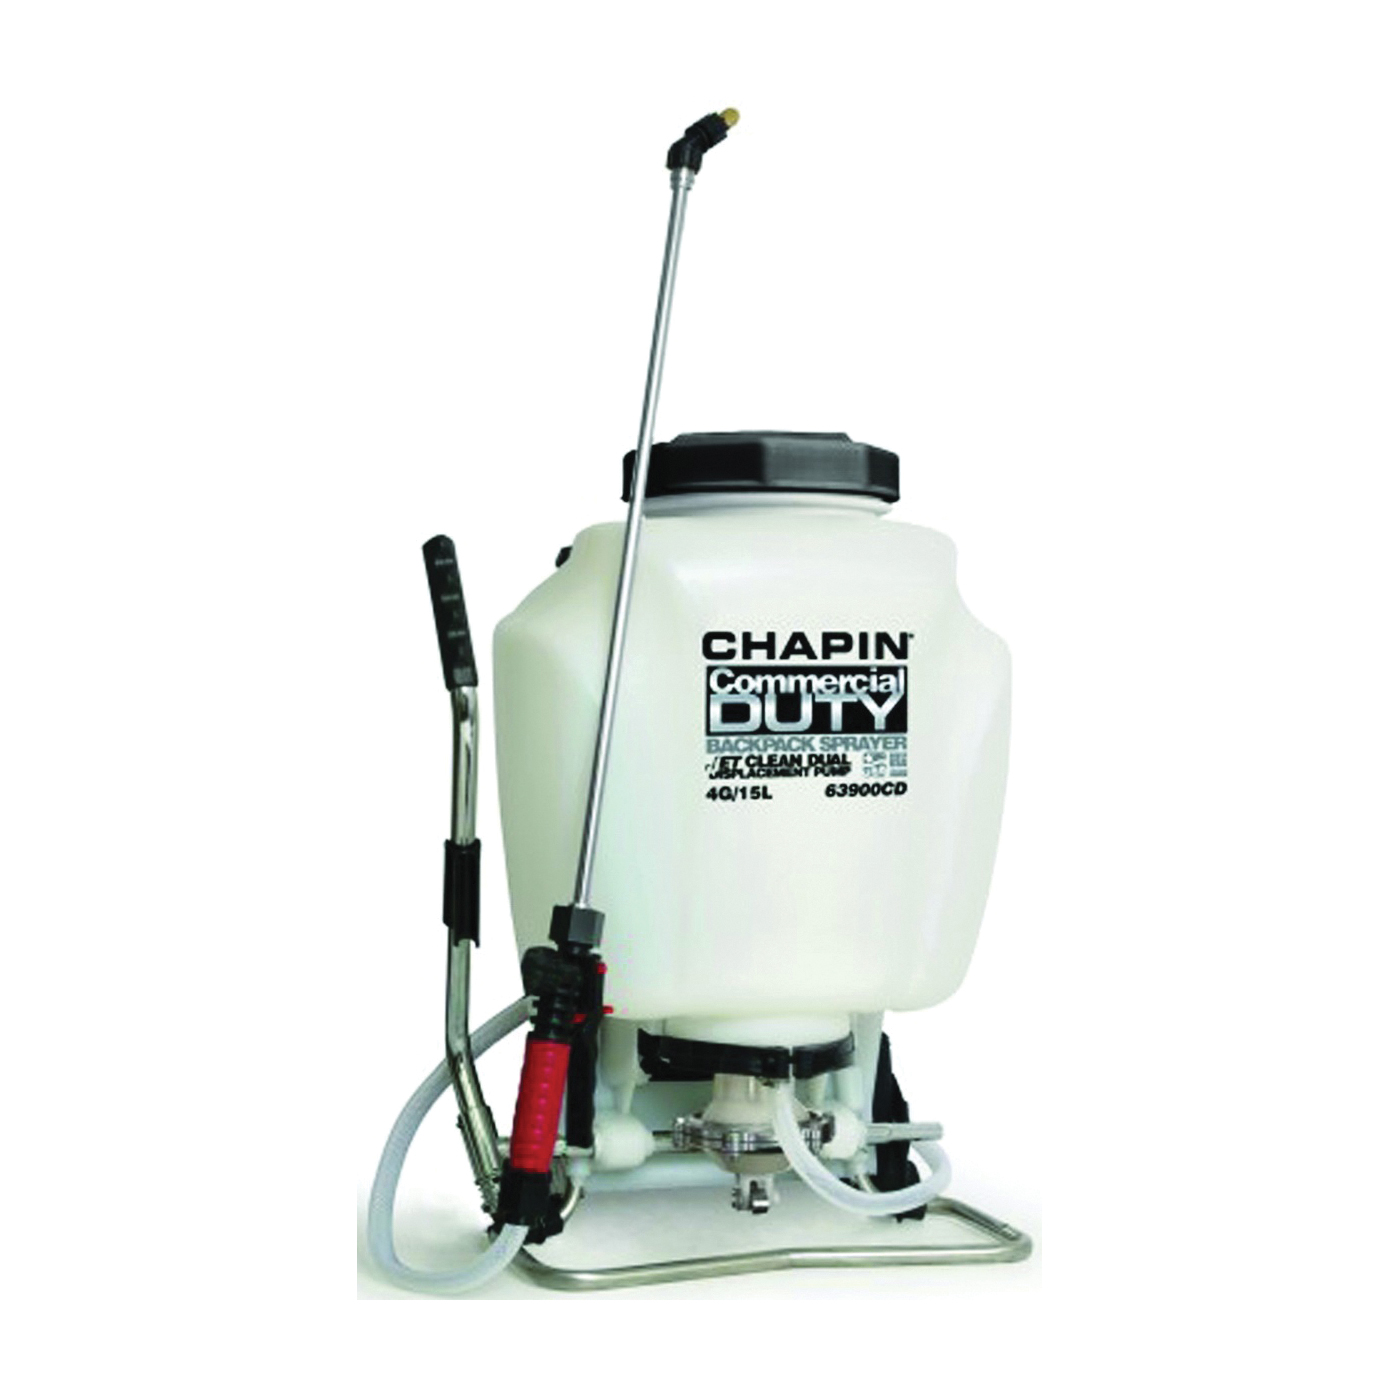 Picture of CHAPIN 63900 Backpack Sprayer, 4 gal Tank, Poly Tank, 25 ft Horizontal, 23 ft Vertical Spray Range, 48 in L Hose